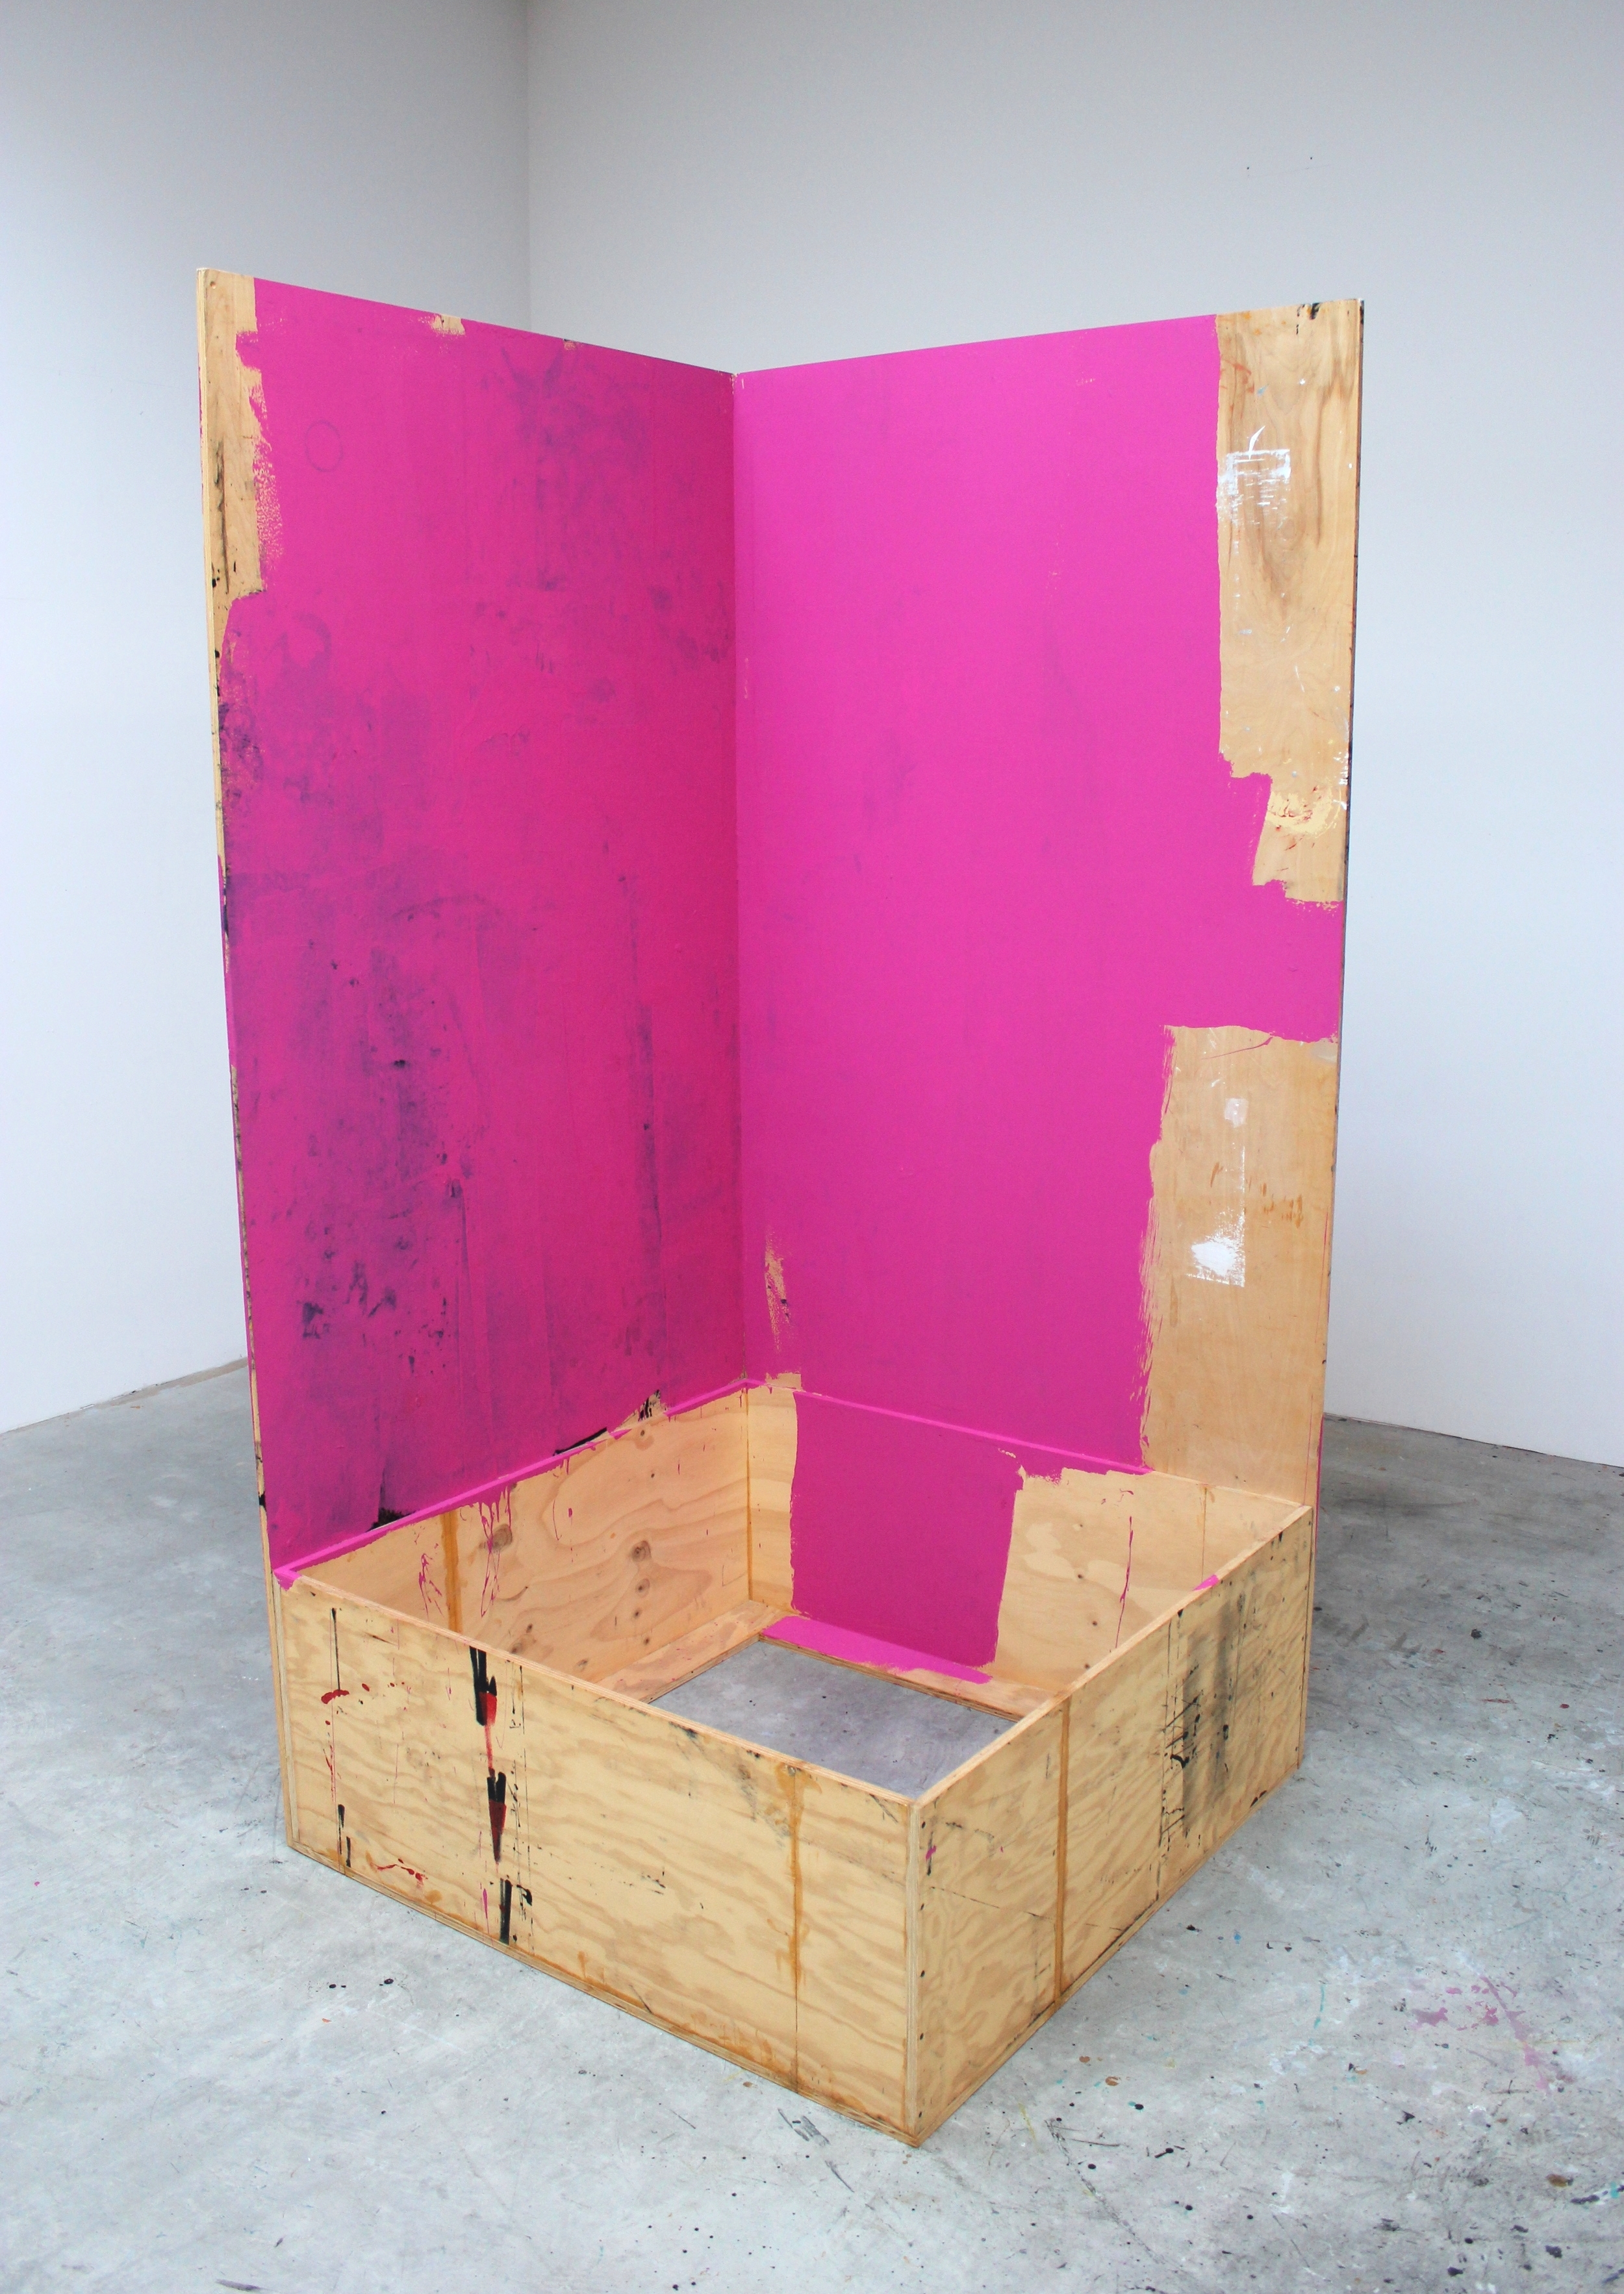 Open Container 2013 96 x 48.5 x 48 inches